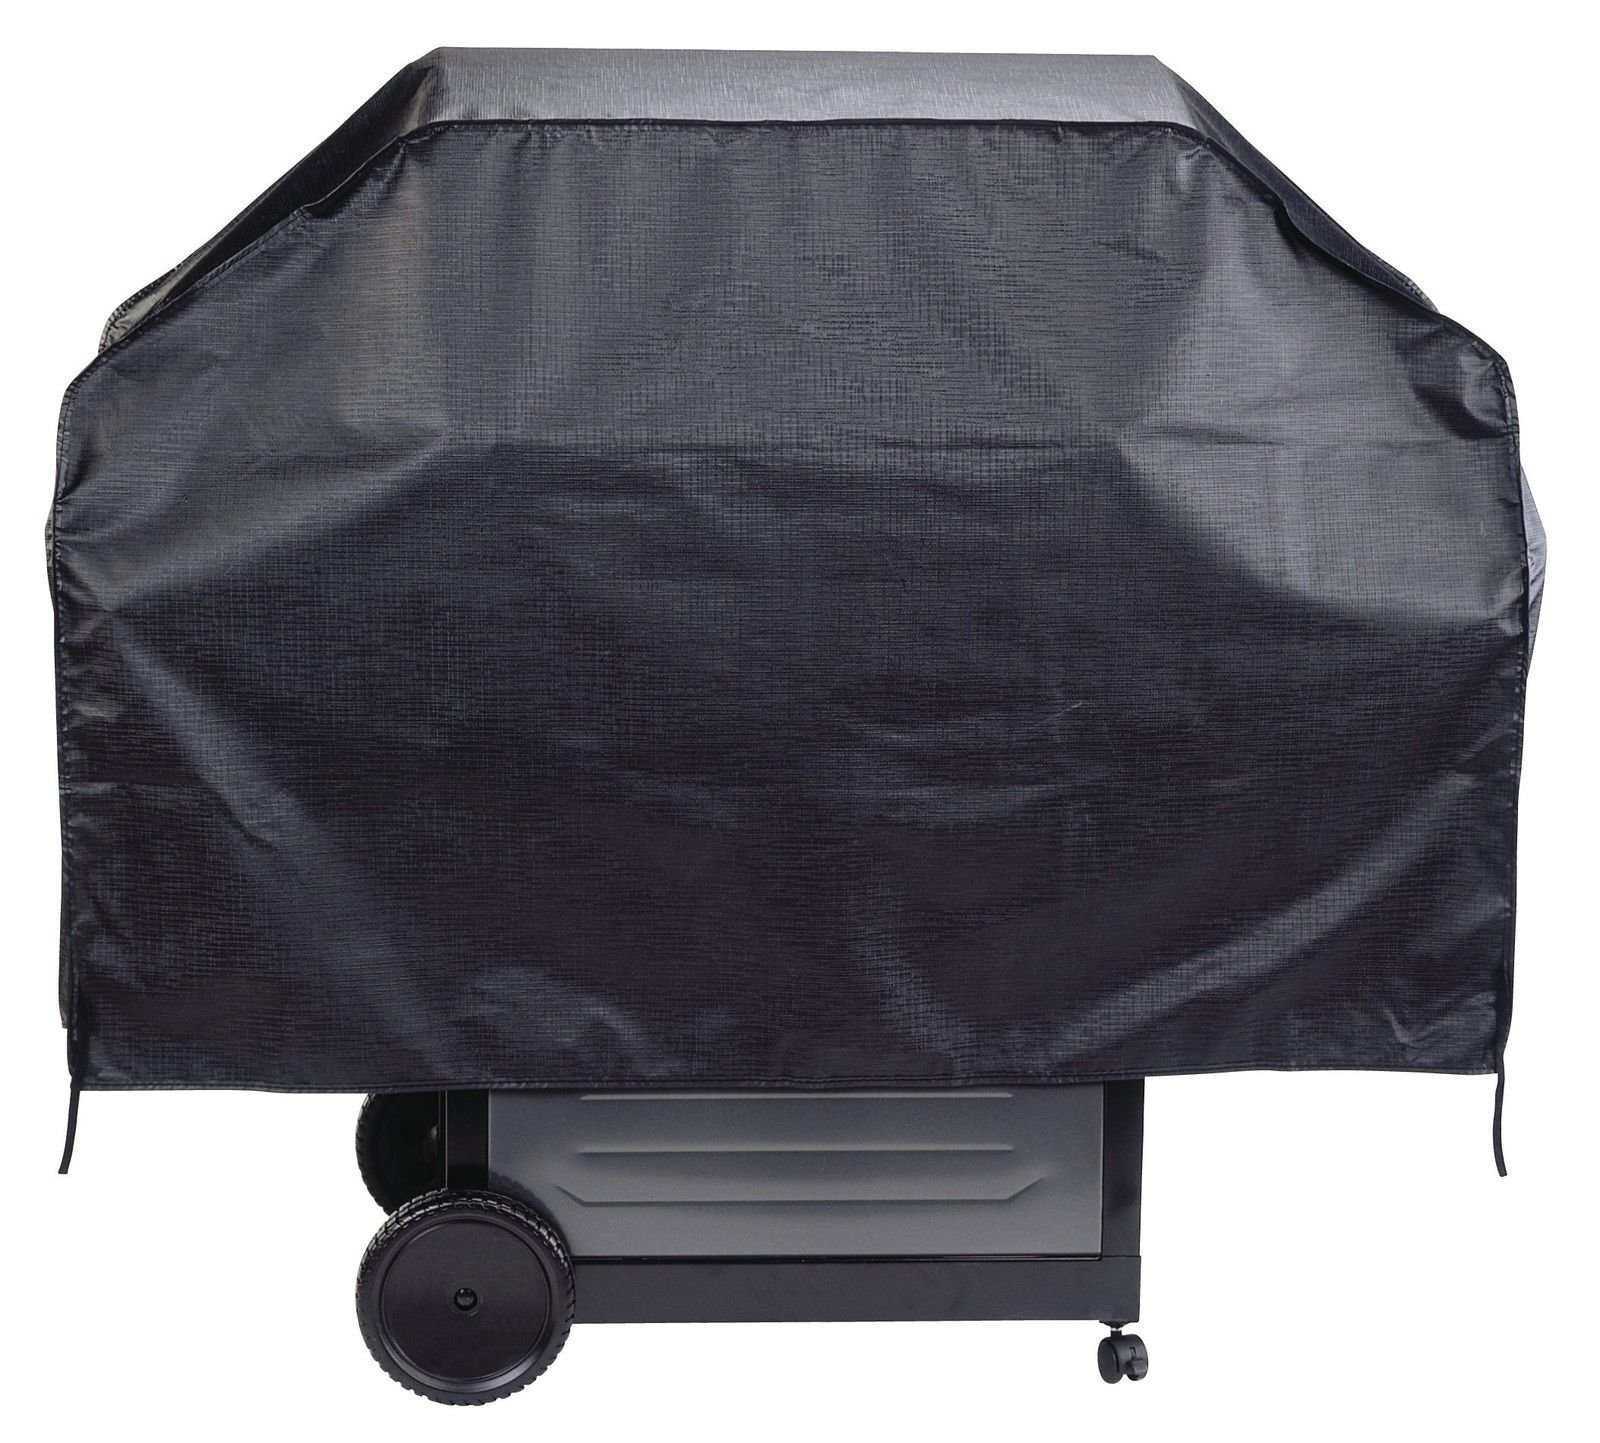 (Ship from USA) Modern Leisure 60-Inch Tear Resistent Grill Cover /ITEM NO#8Y-IFW81854280349 by Rosotion